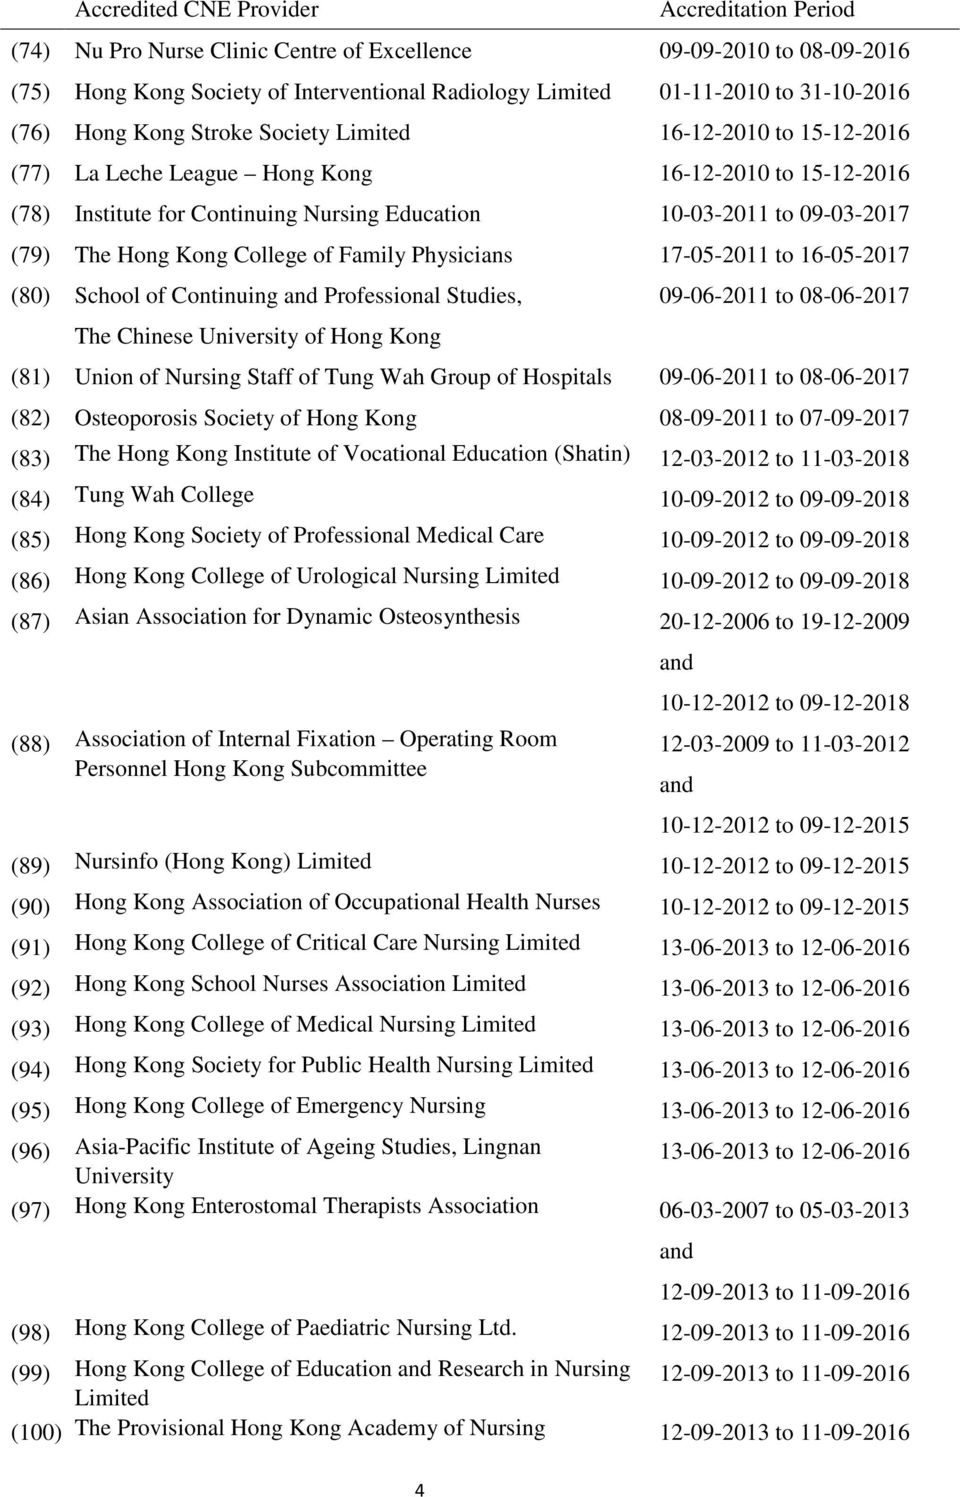 to 16-05-2017 (80) School of Continuing Professional Studies, 09-06-2011 to 08-06-2017 The Chinese University of Hong Kong (81) Union of Nursing Staff of Tung Wah Group of Hospitals 09-06-2011 to